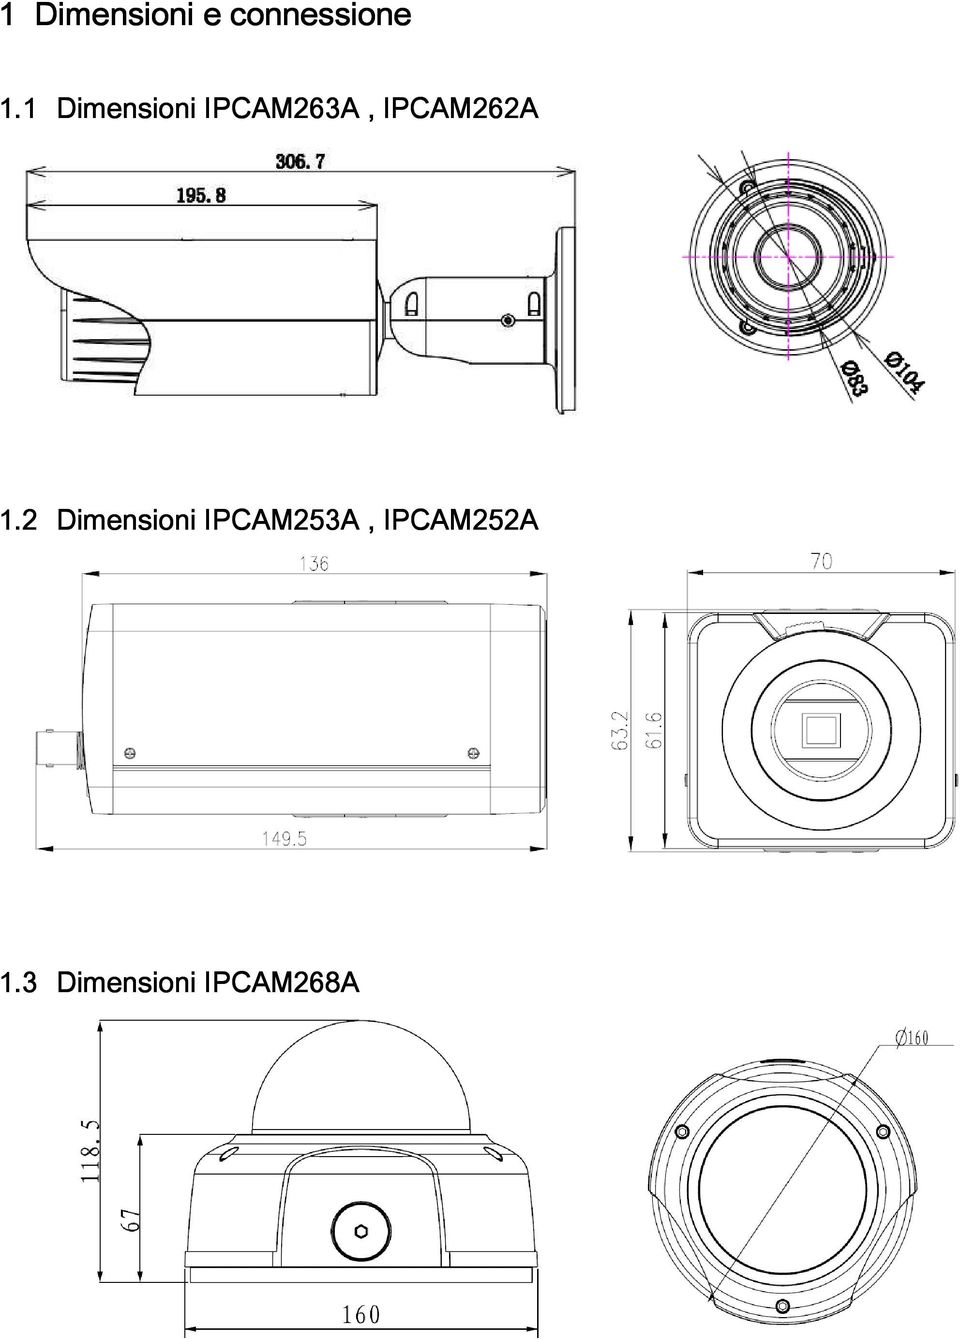 IPCAM262A 1.